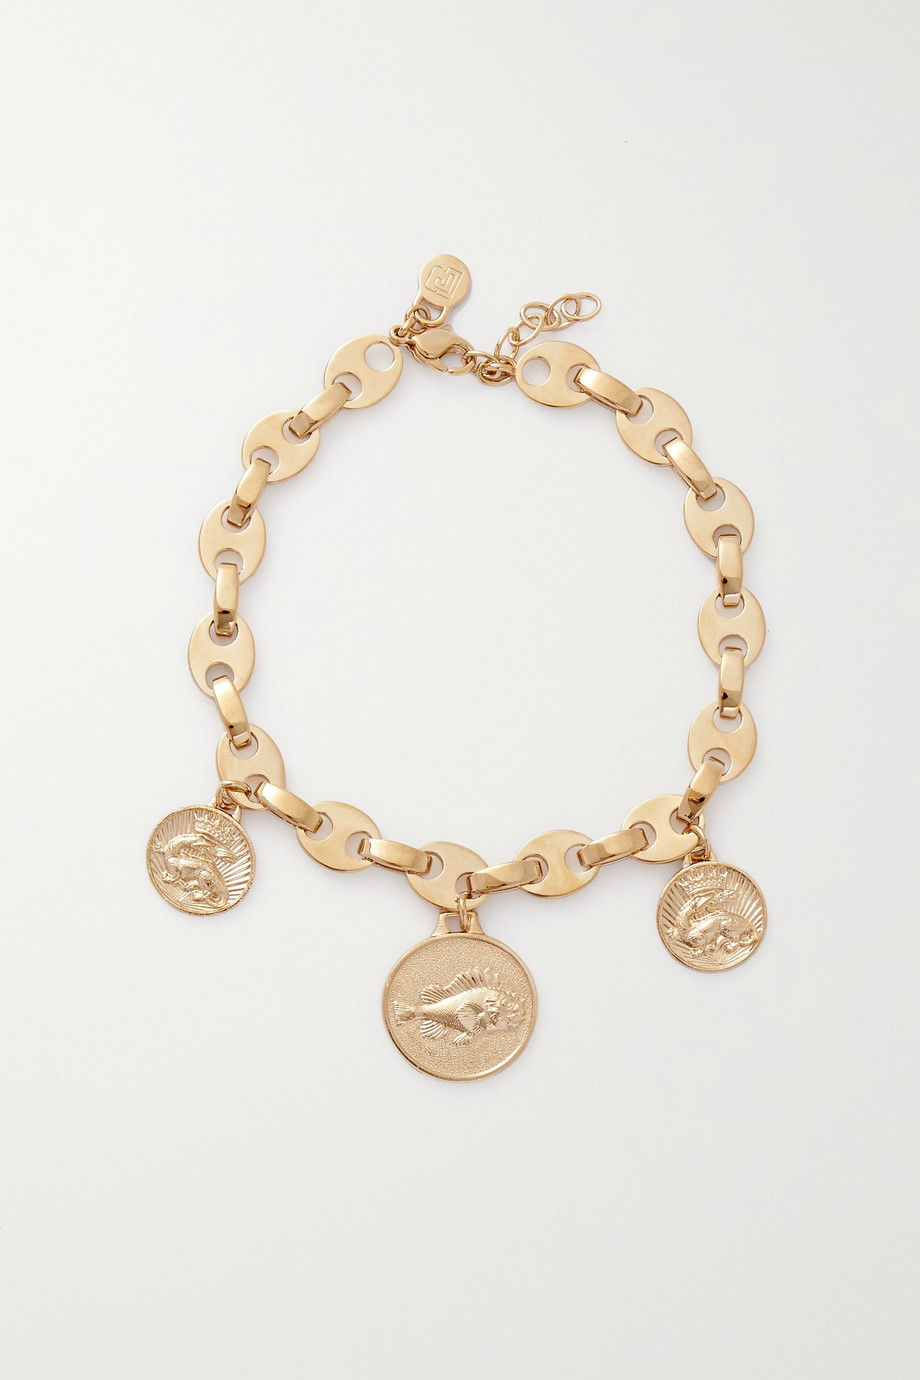 Paco Rabanne Eight Nano gold-plated anklet